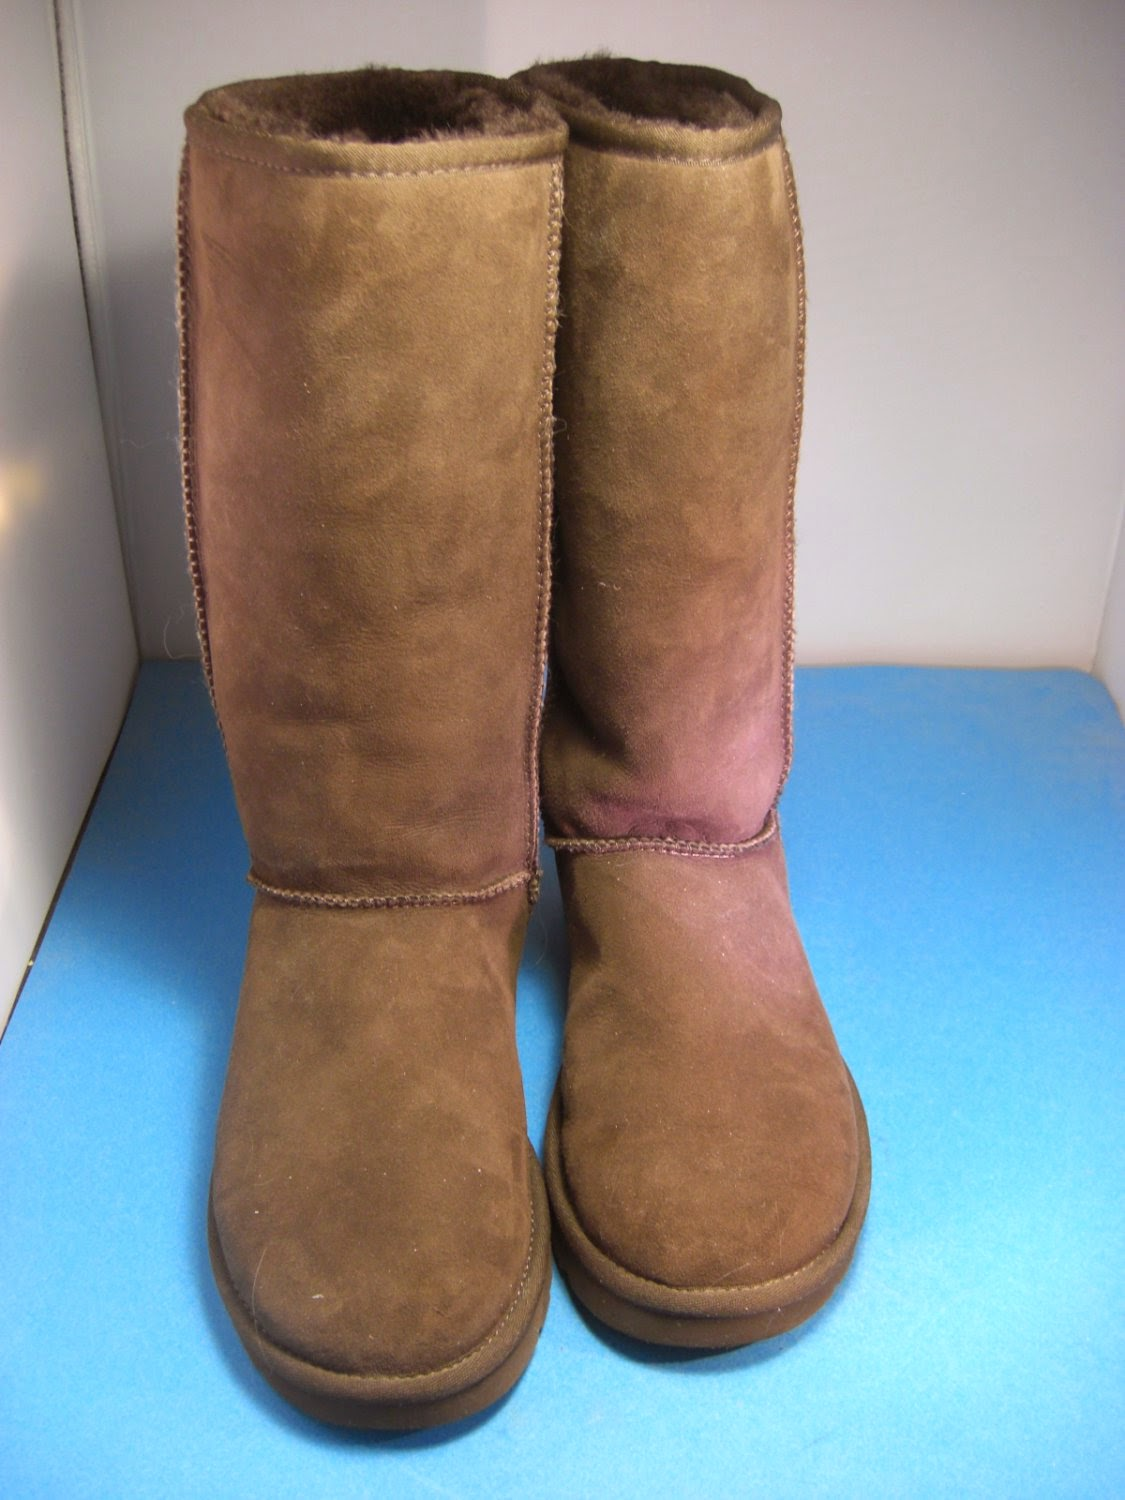 http://bargaincart.ecrater.com/p/20527988/ugg-australia-authentic-brown-classic?keywords=ugg